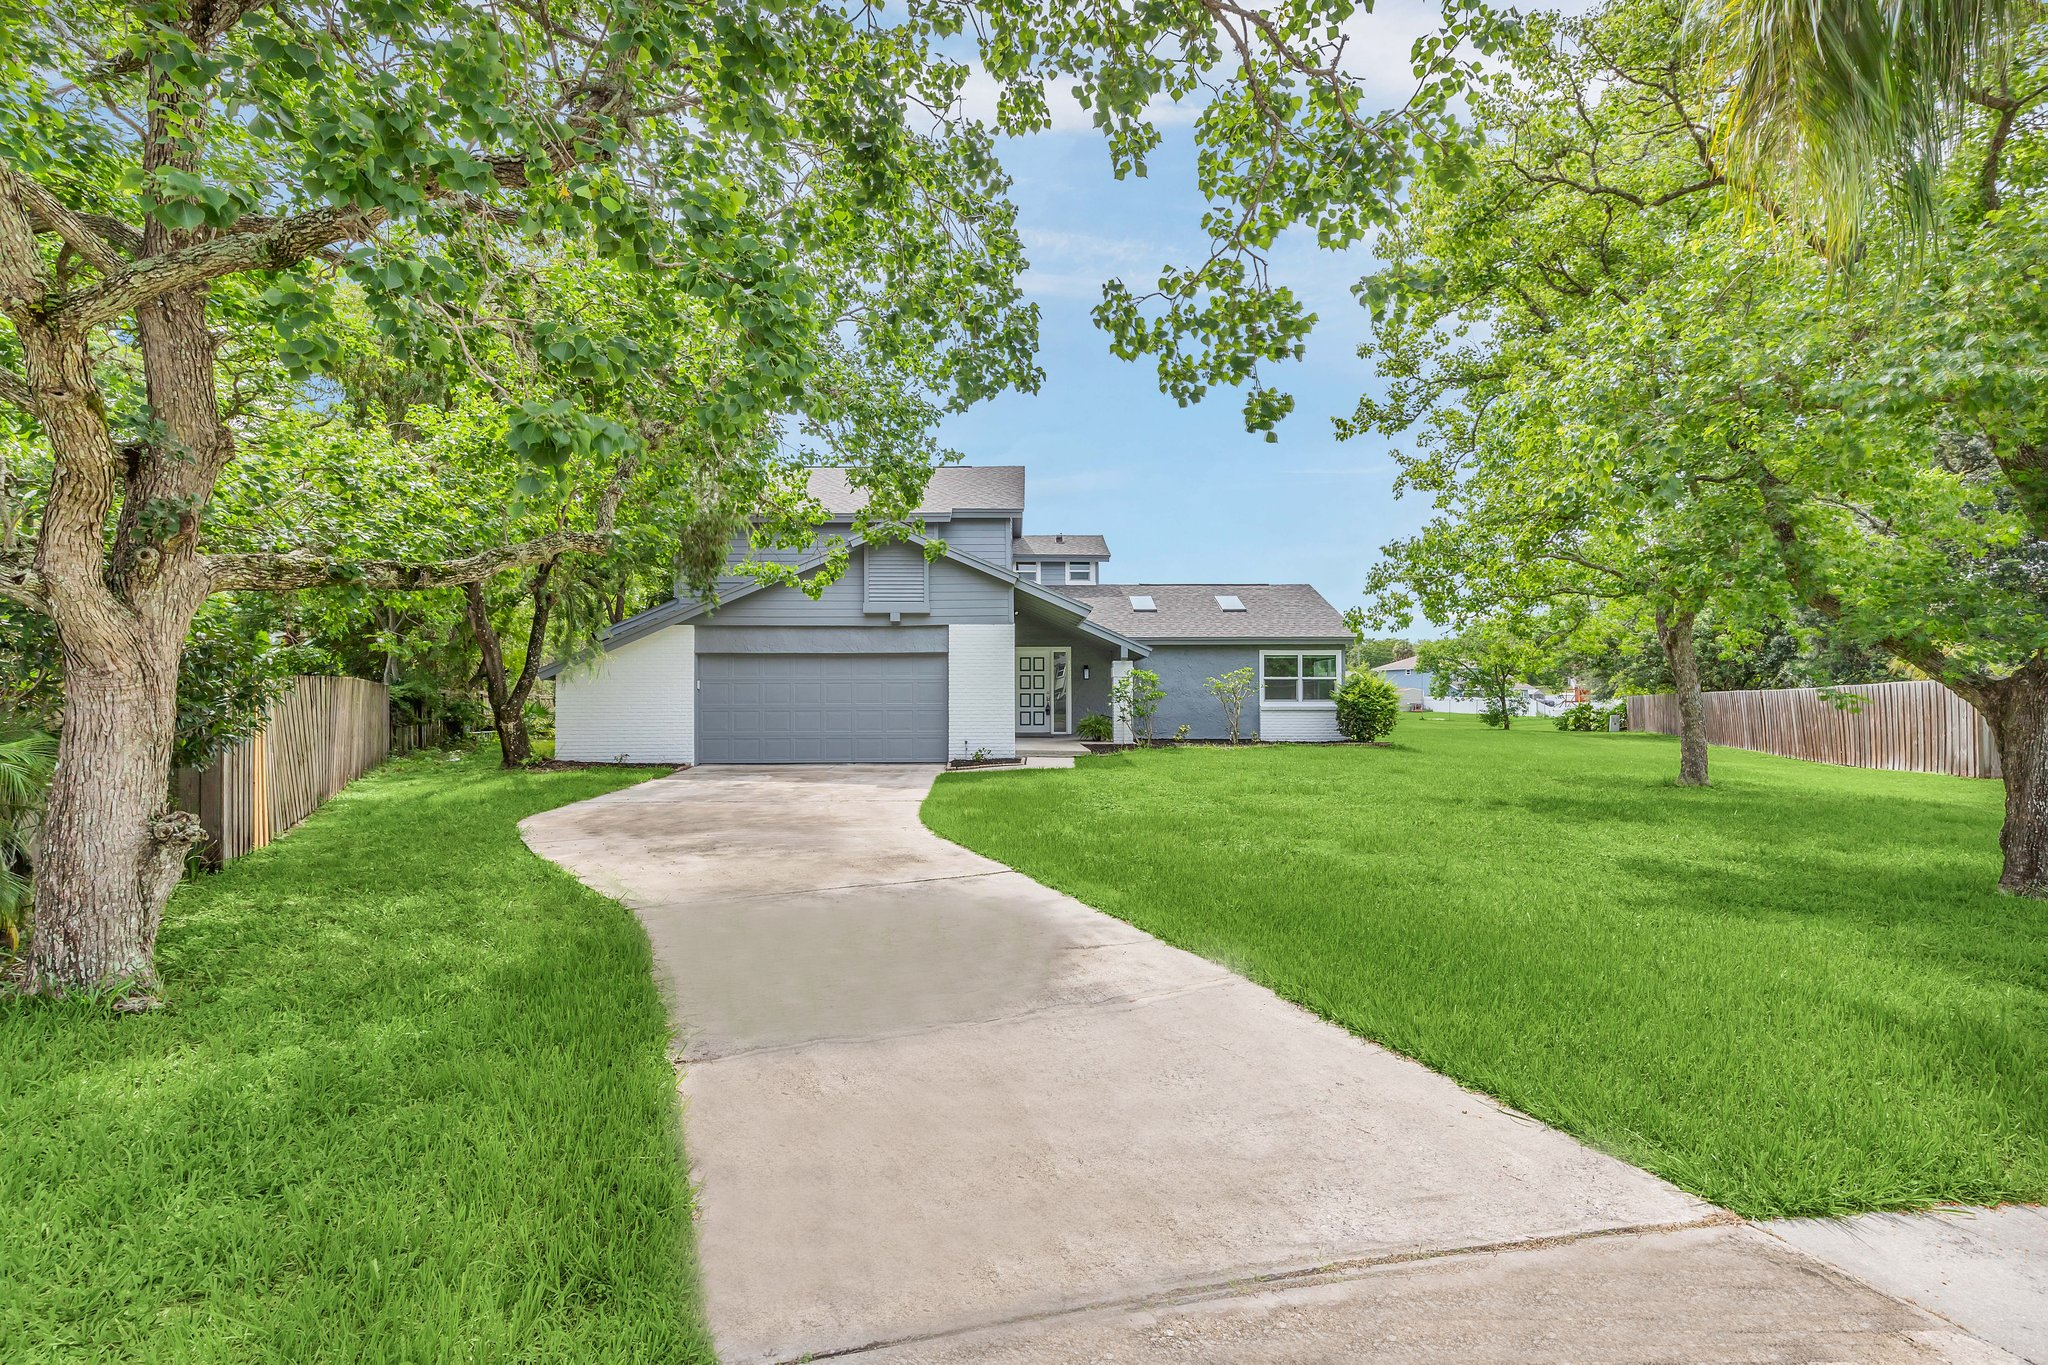 Welcome home to your grand driveway tucked away!